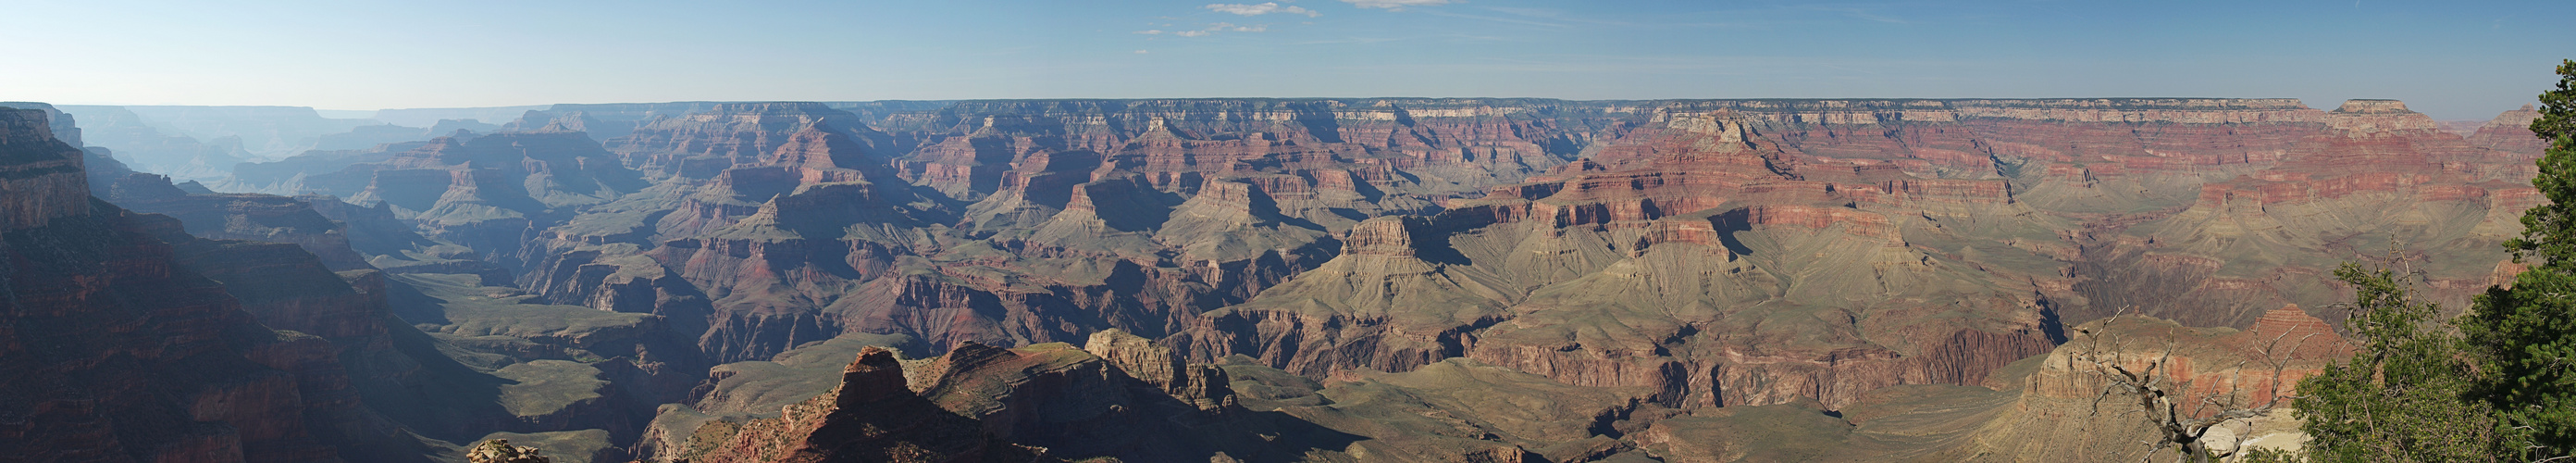 Panoramablick in den Grand Canyon vom Yaki Point